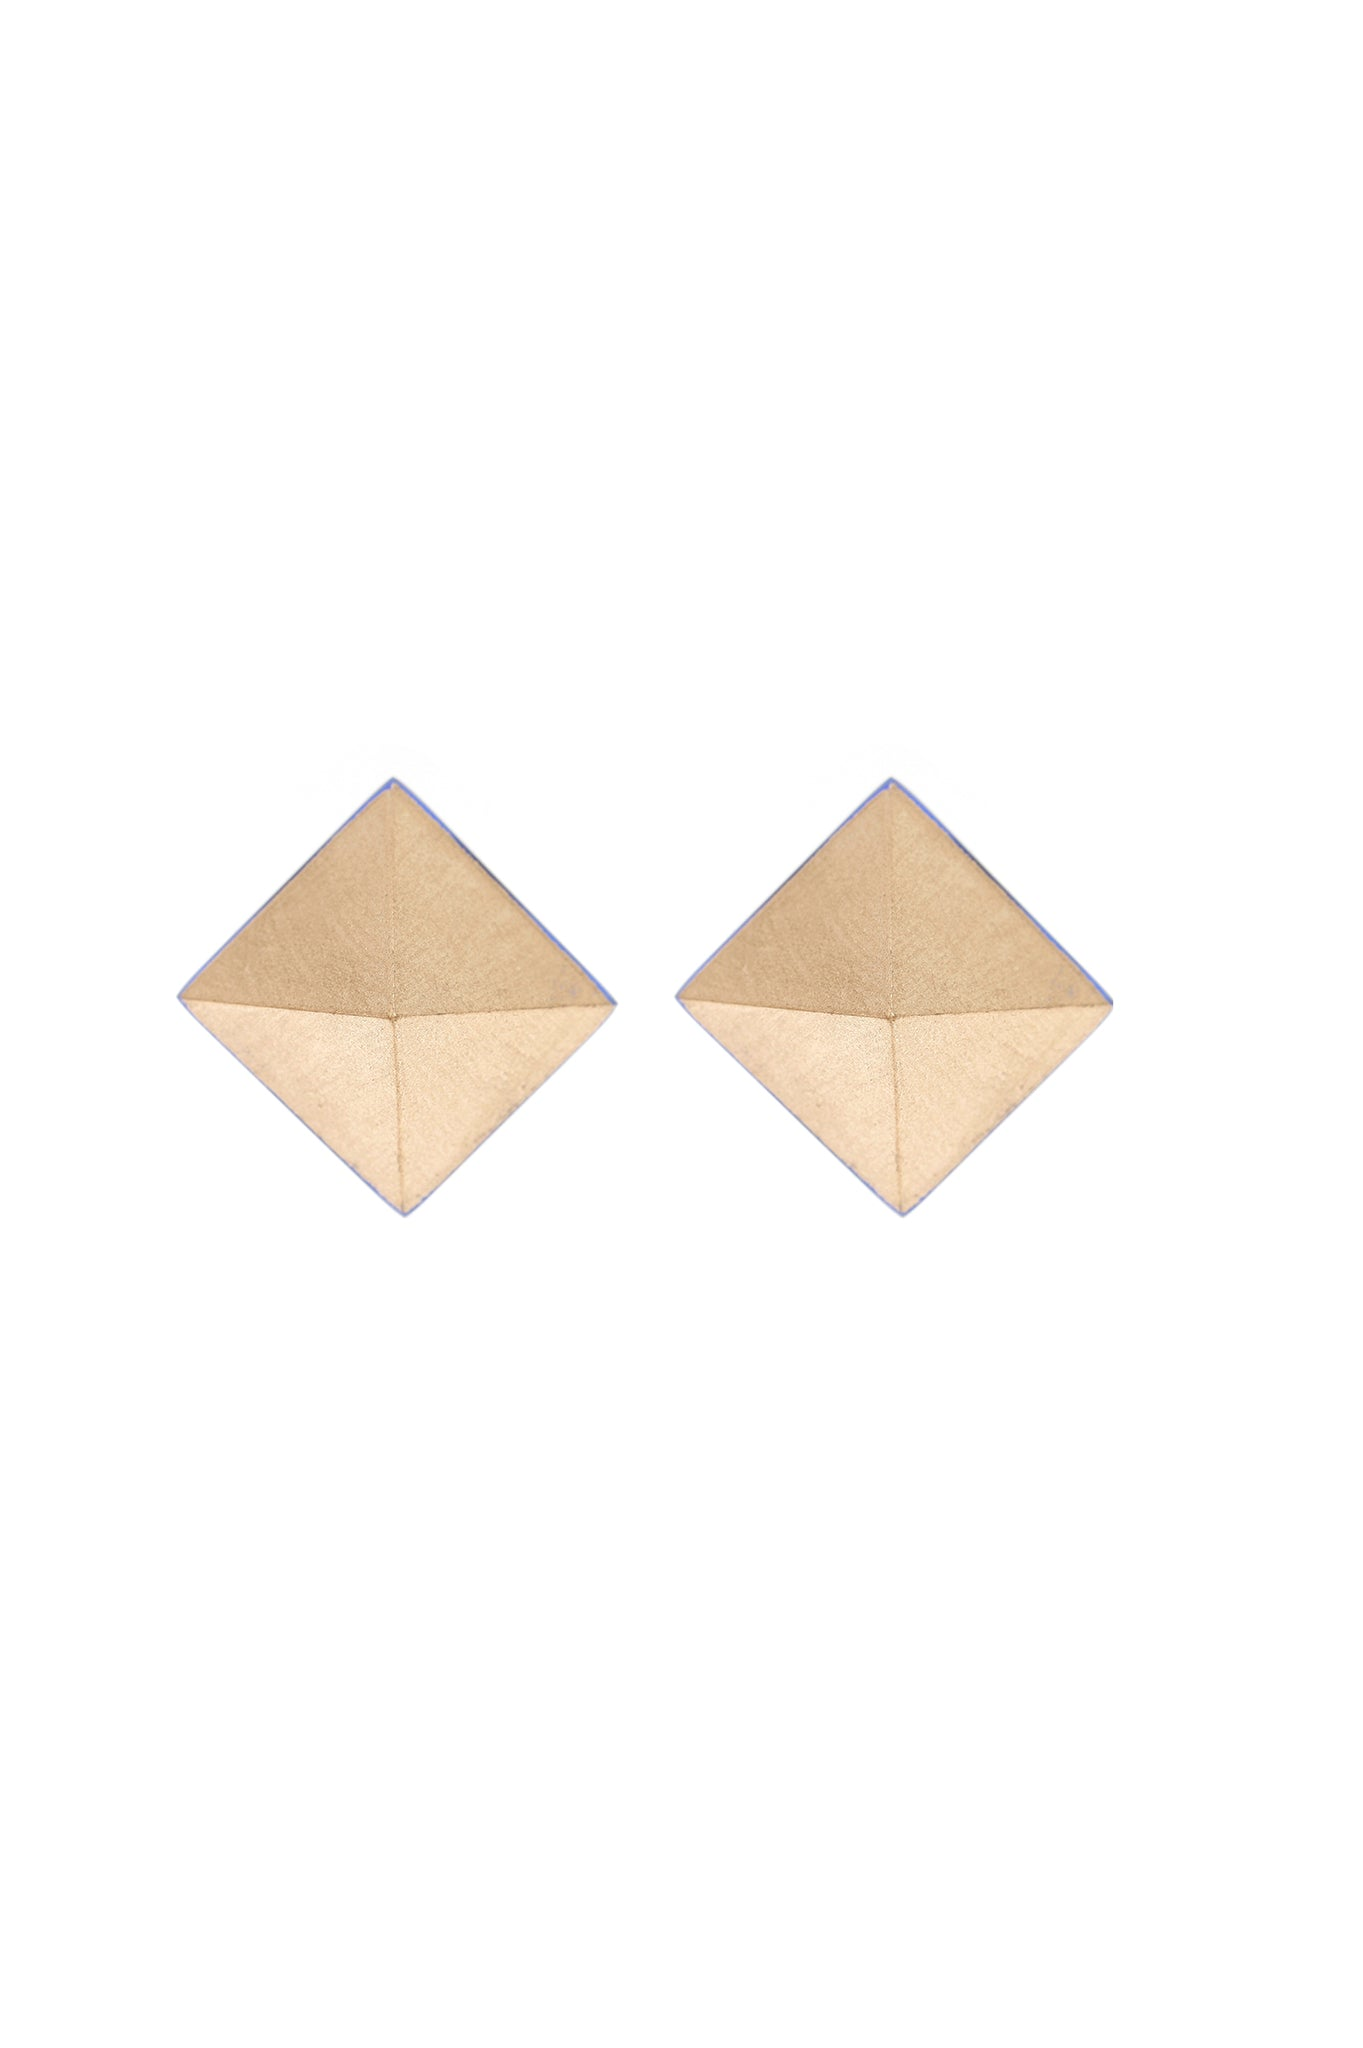 Graphite and golden pyramid earrings